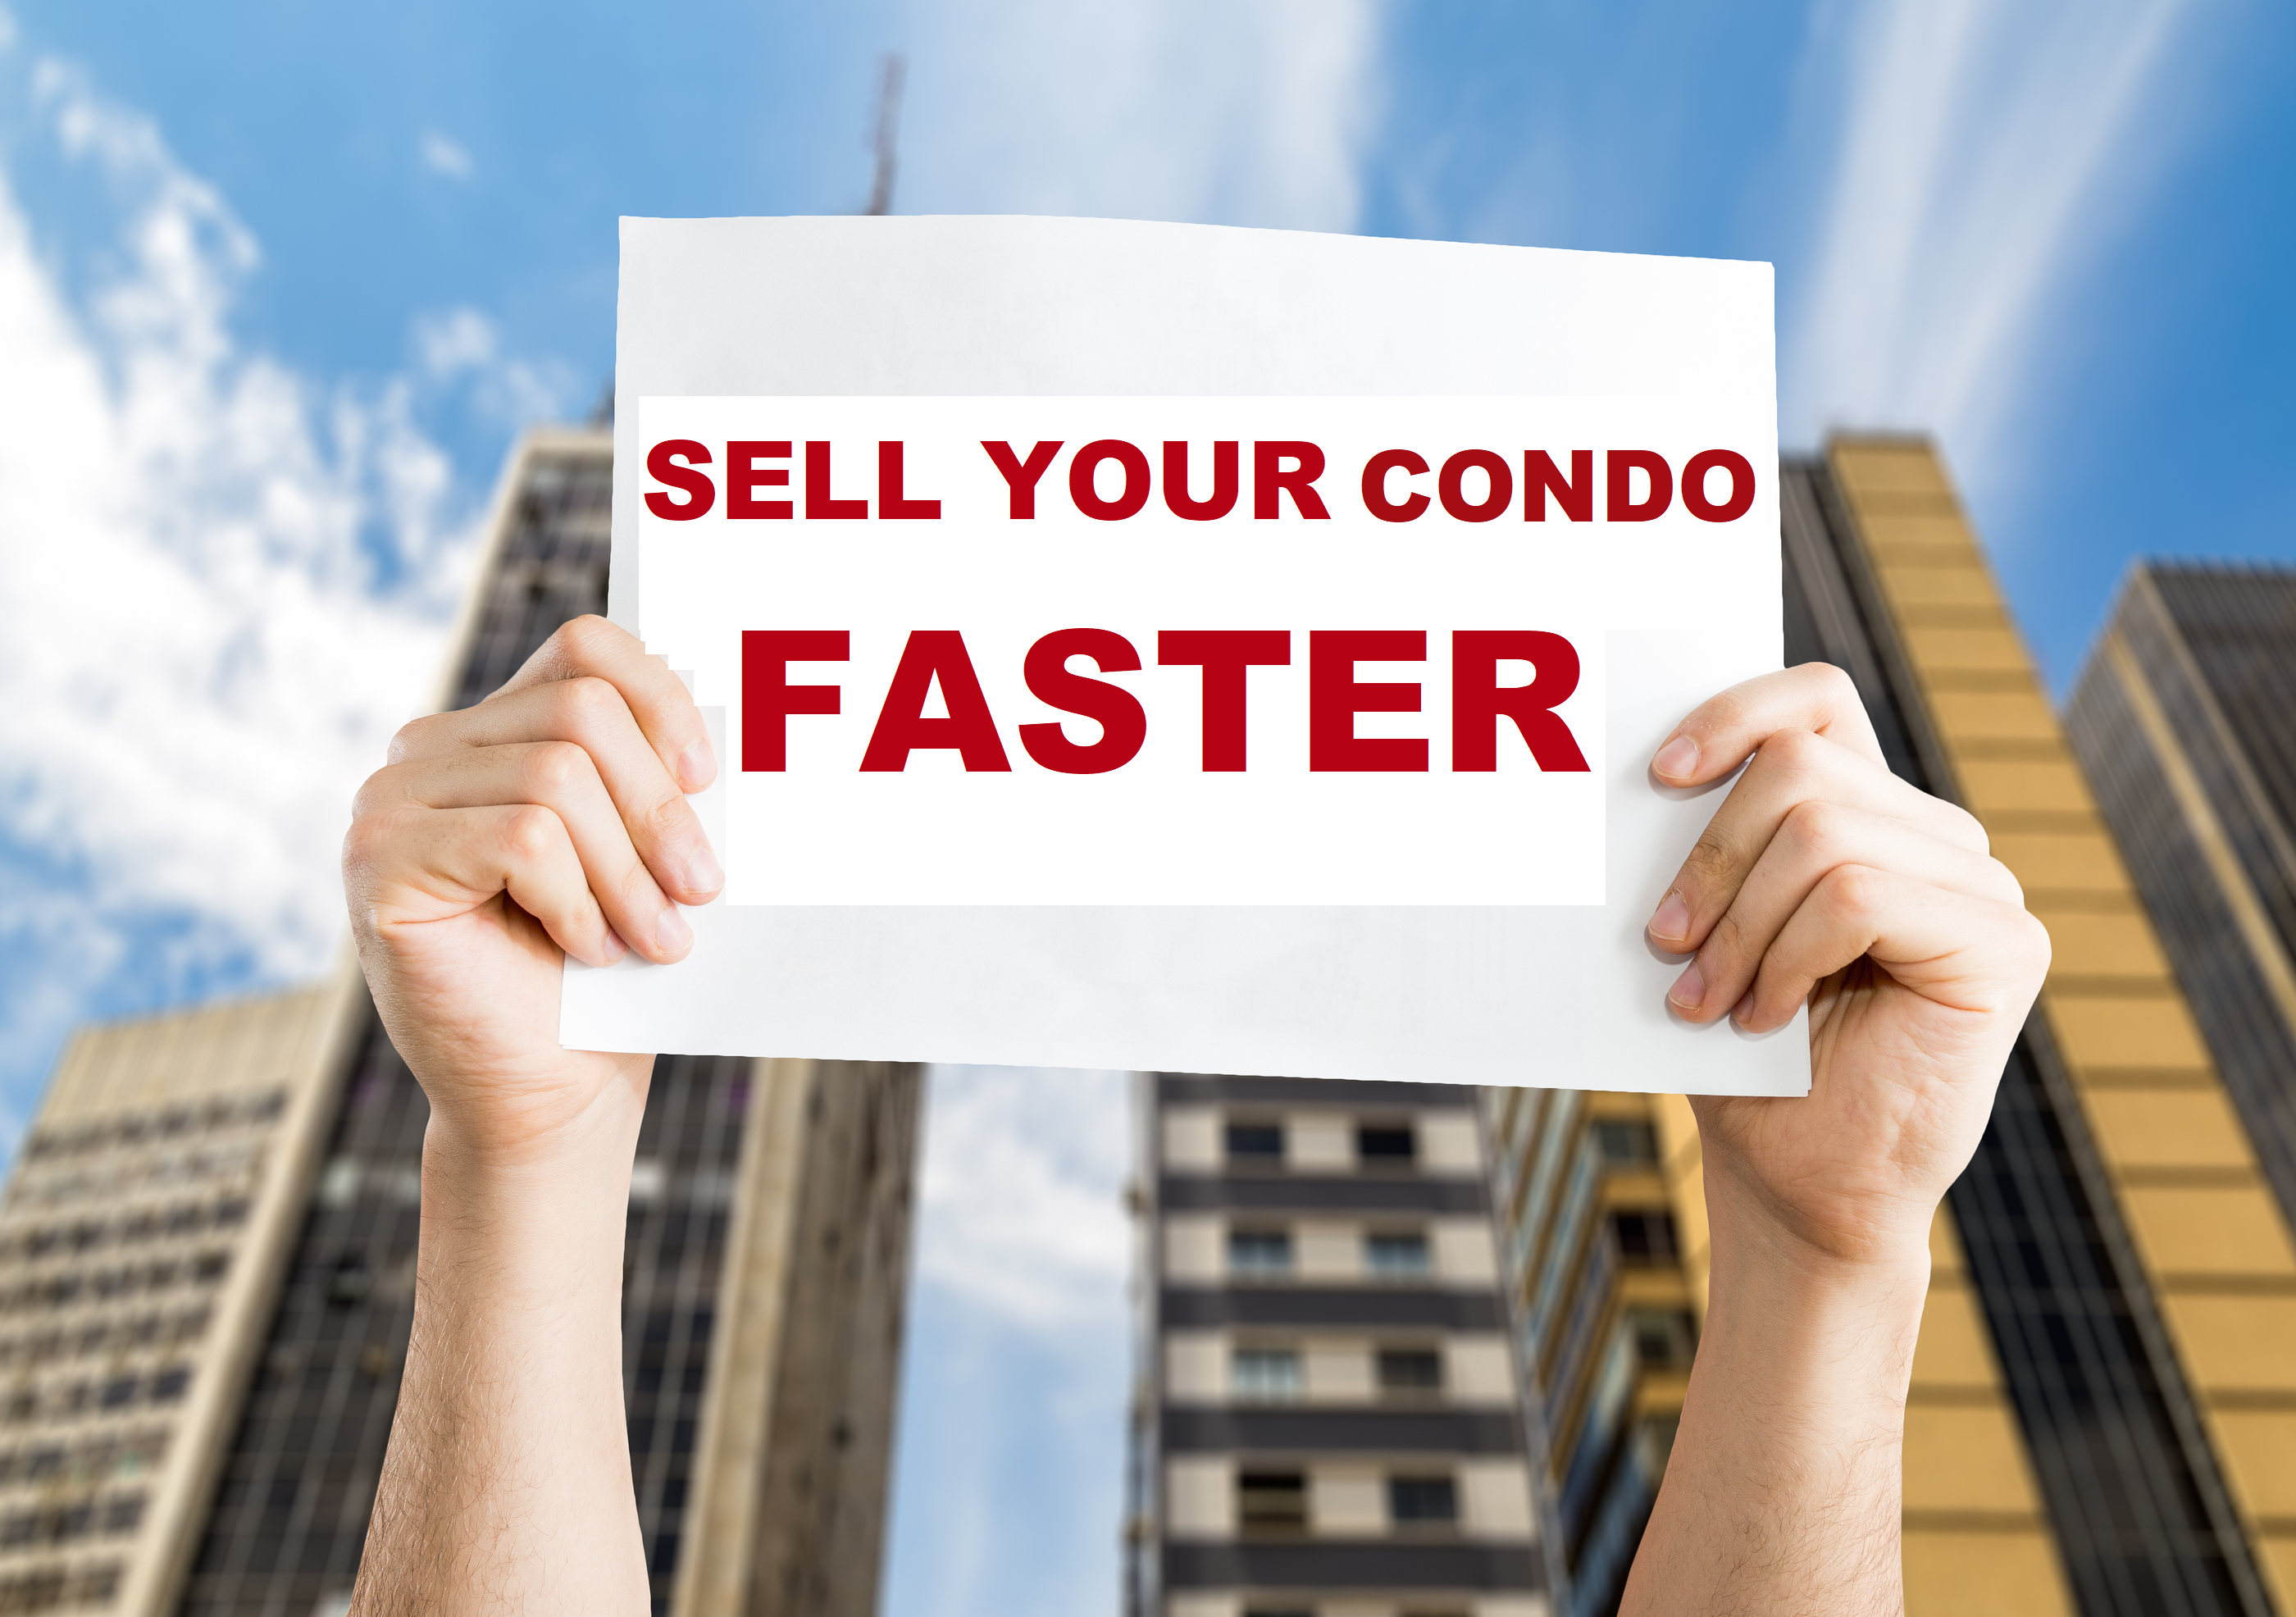 Sell your condo faster for Jean-Luc Andriot blog 061518